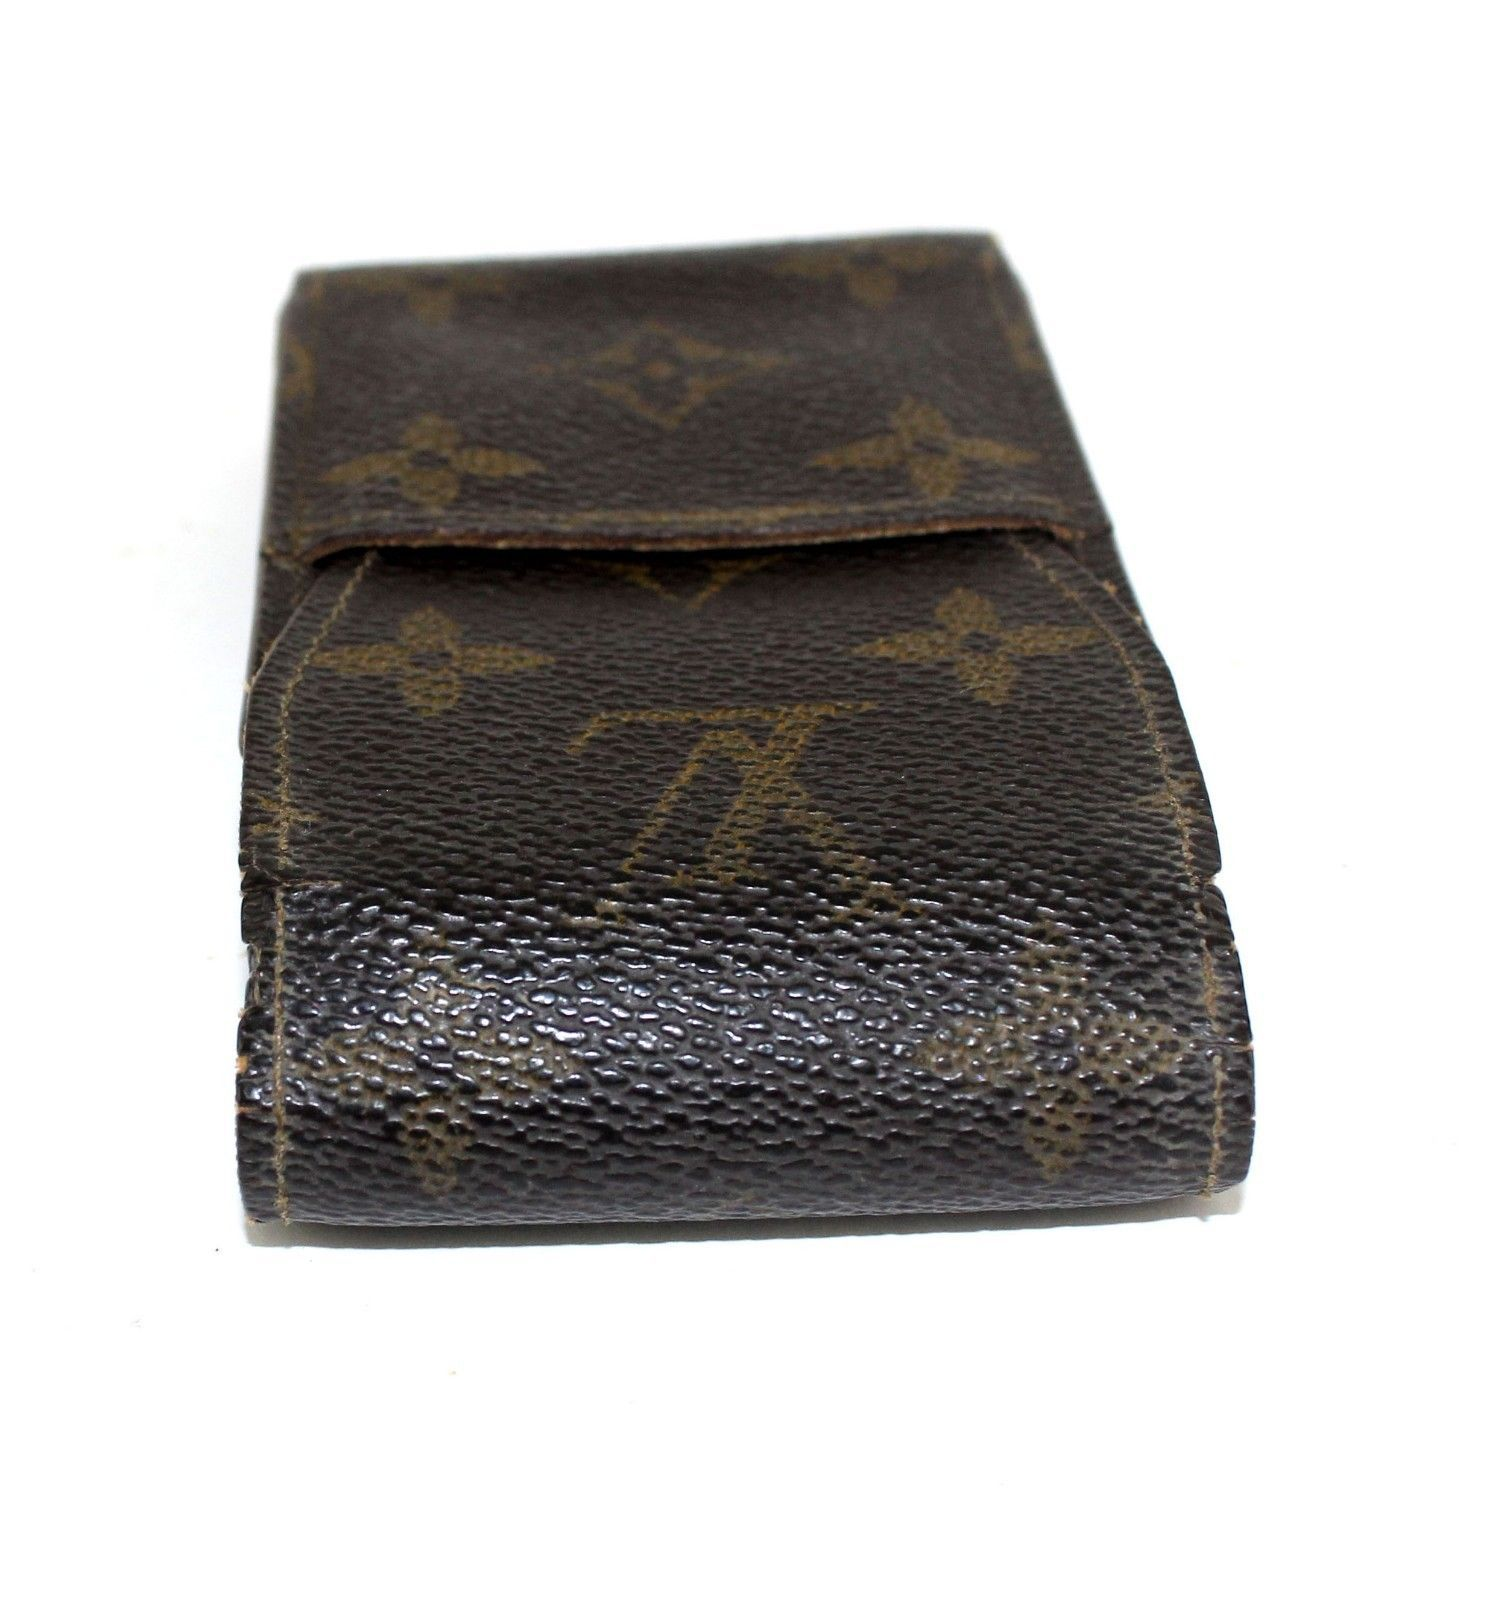 71a7f9e811f5 Auth Louis Vuitton Monogram Canvas Leather and 33 similar items